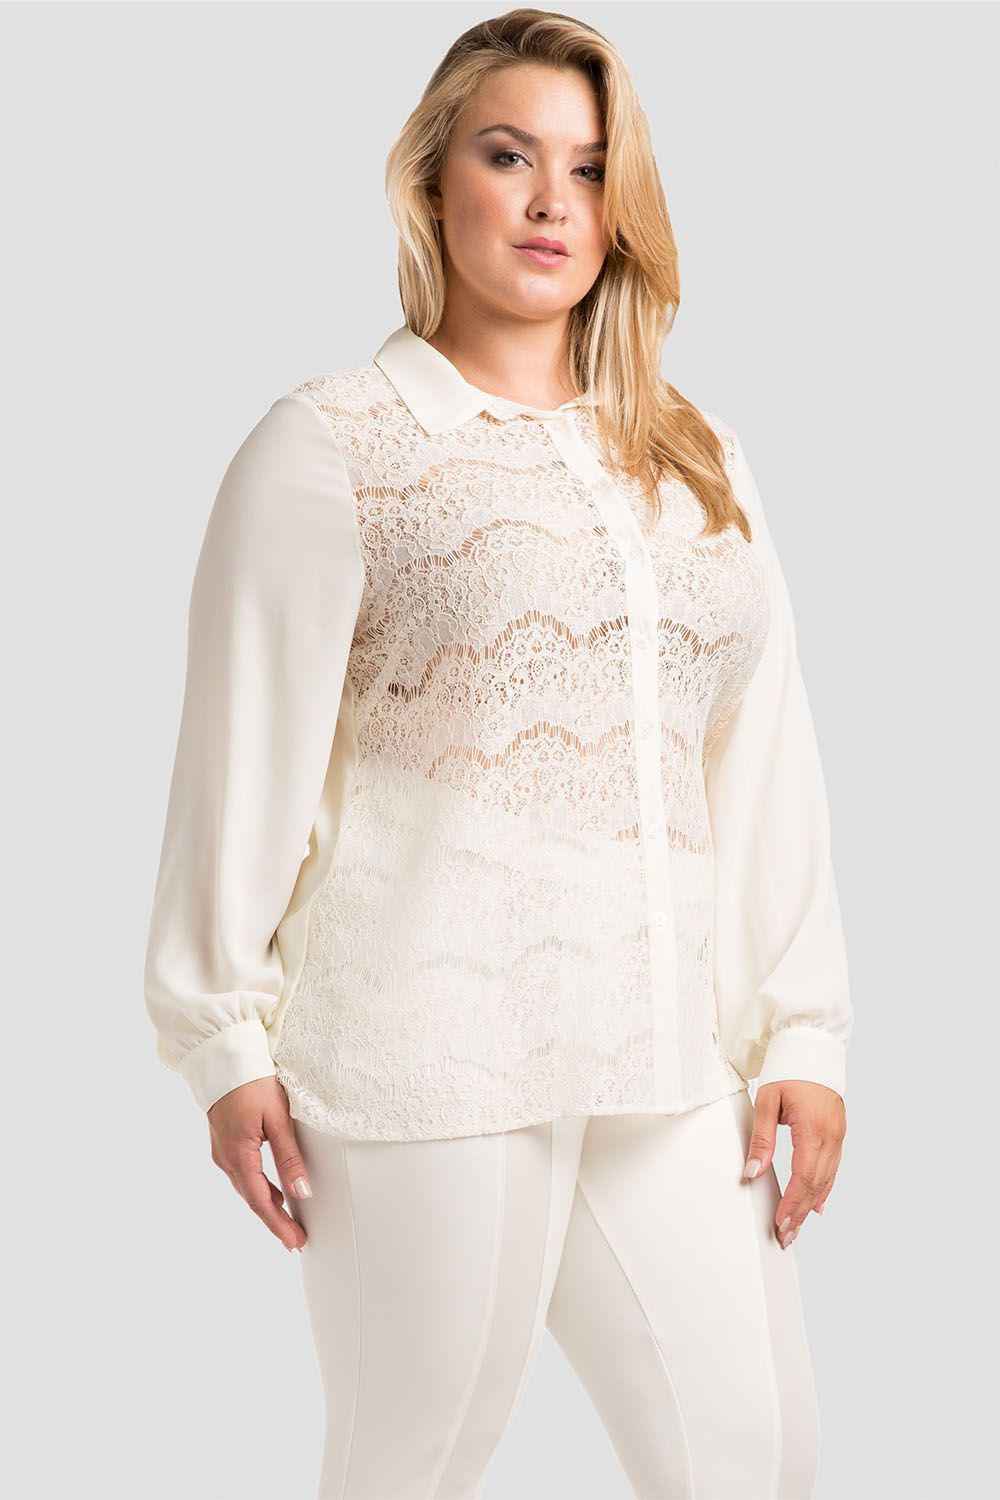 Plus Size Coco Ivory Lace Collared Shirt